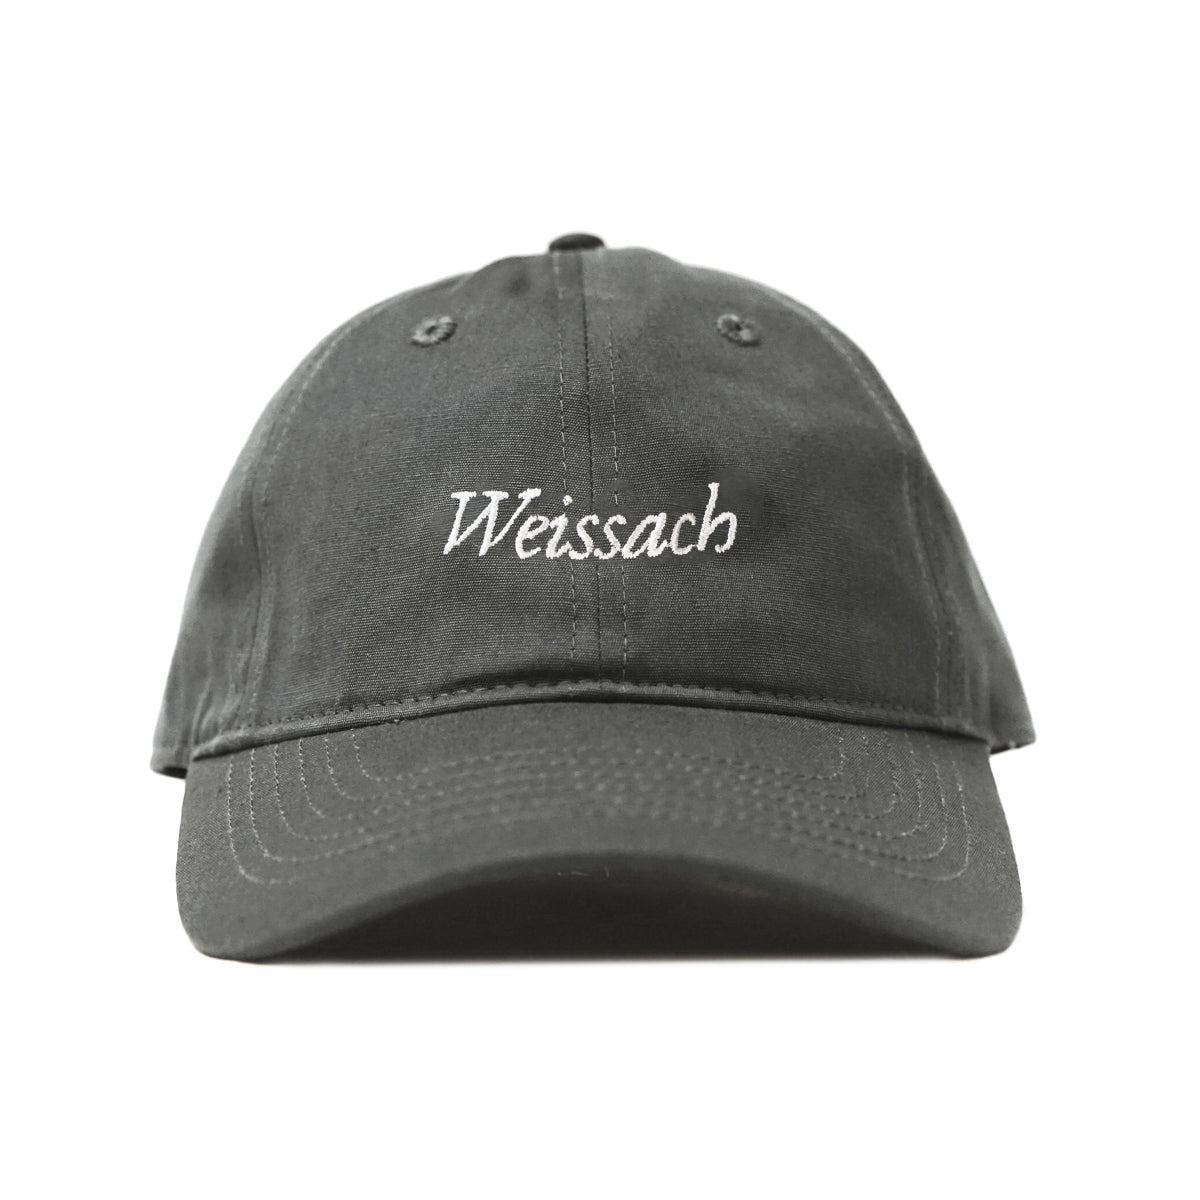 PC WEISSACH CAP GREY